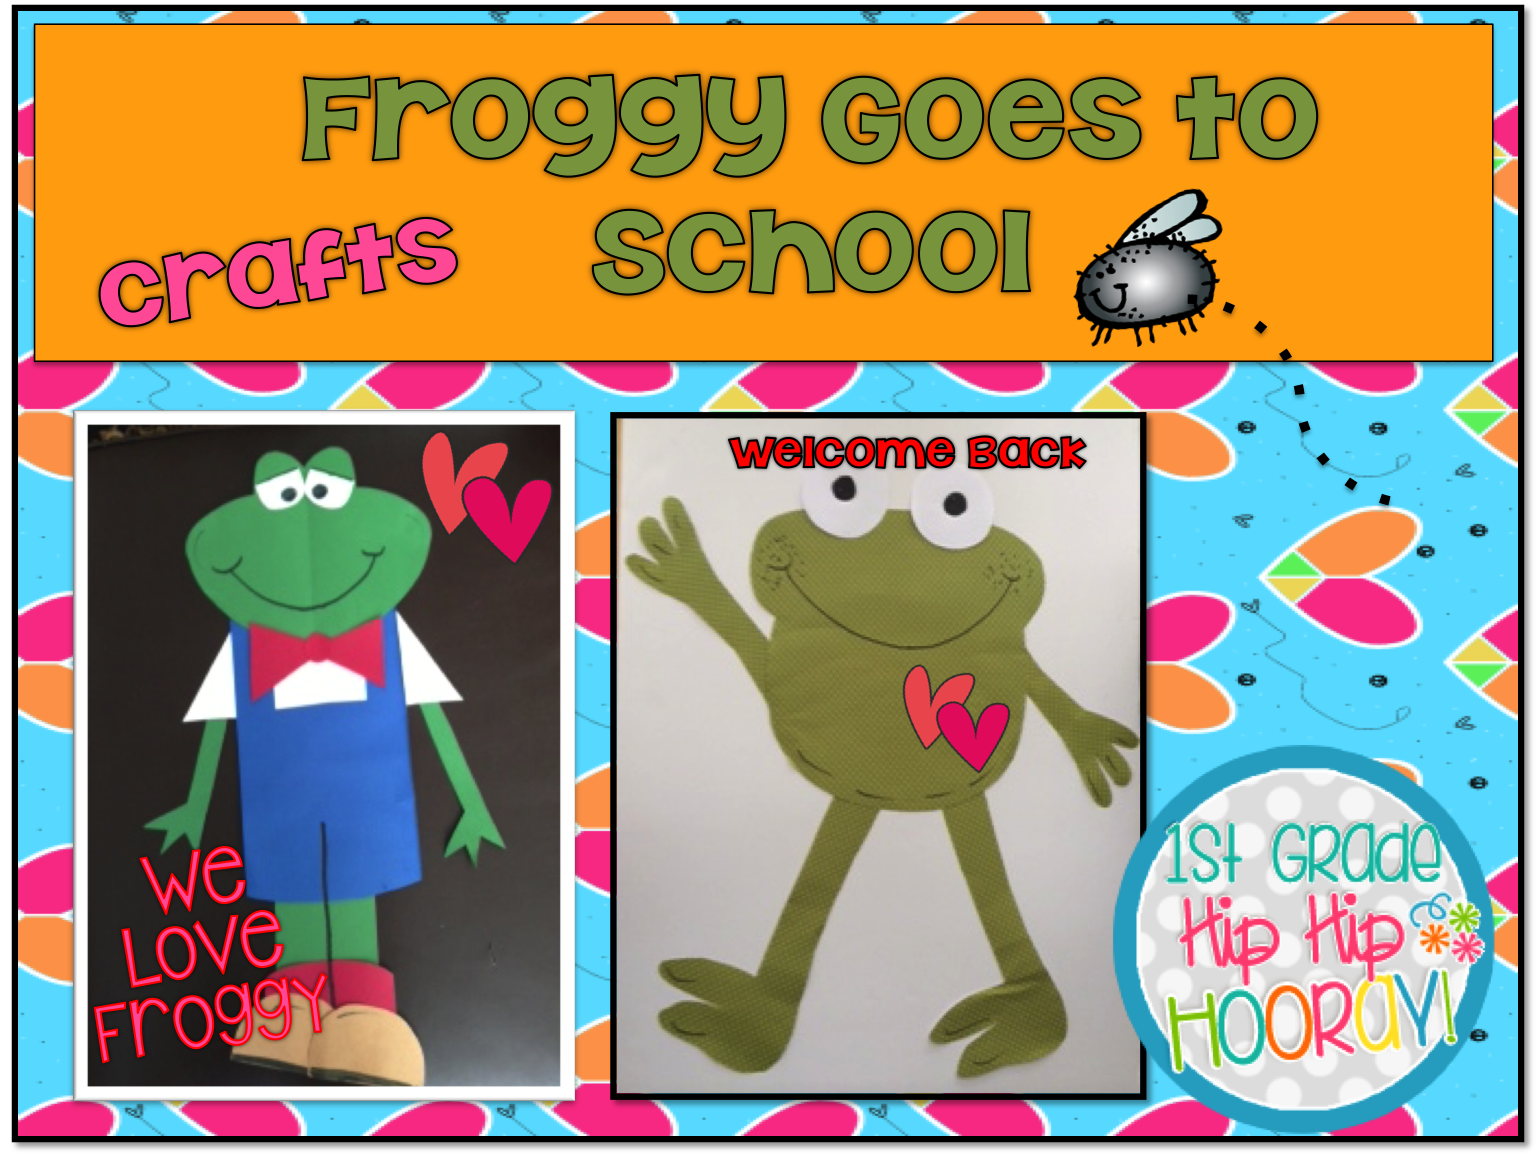 1st Grade Hip Hip Hooray Froggy Goes To School